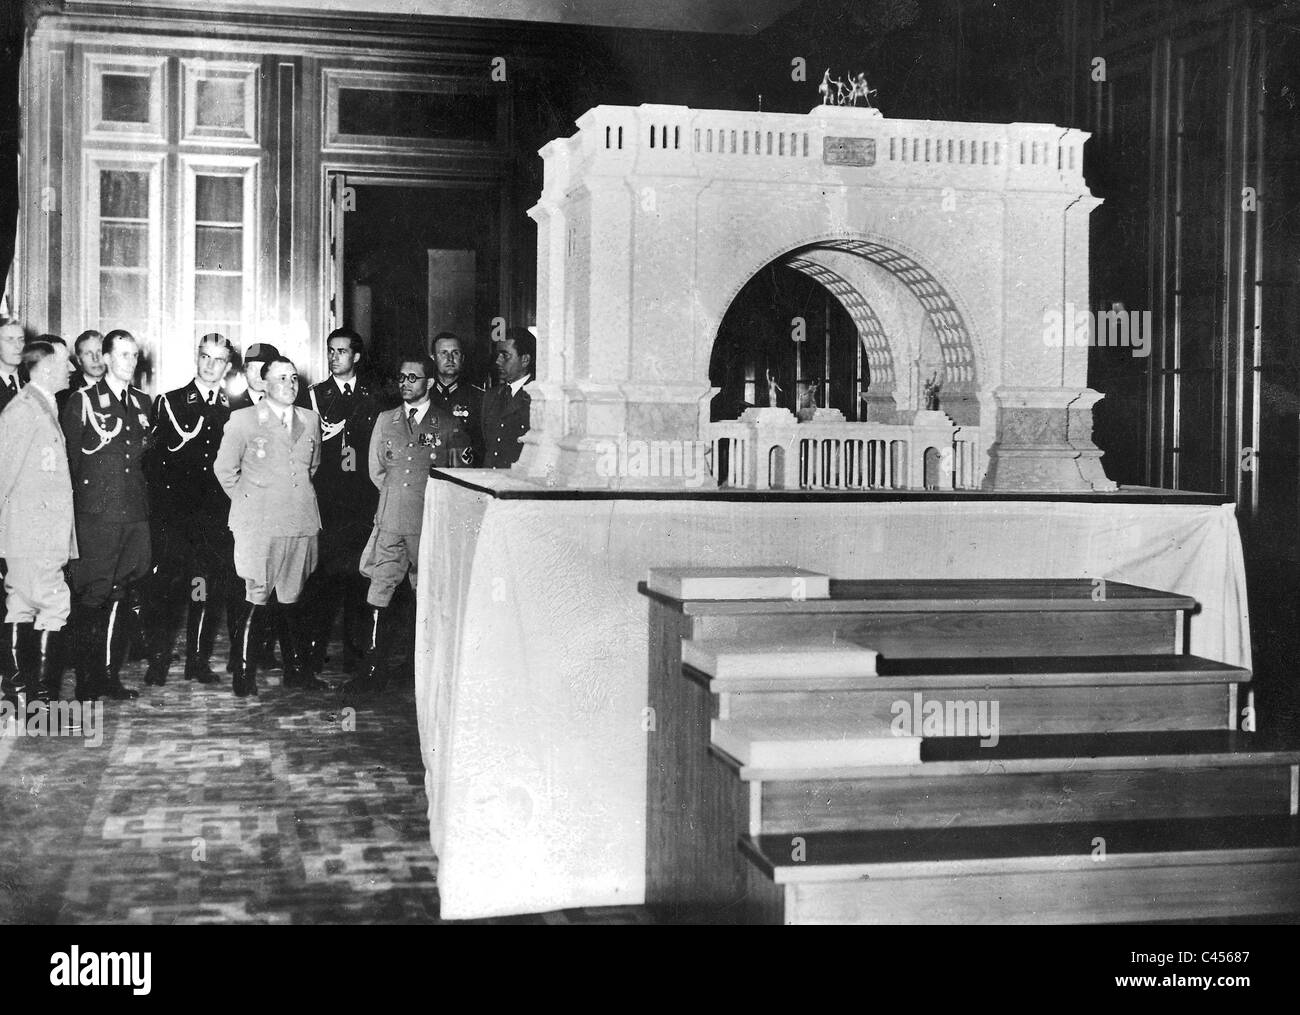 Hitler, Speer, Bormann inspect a model of the triumphal arch for Berlin - Stock Image